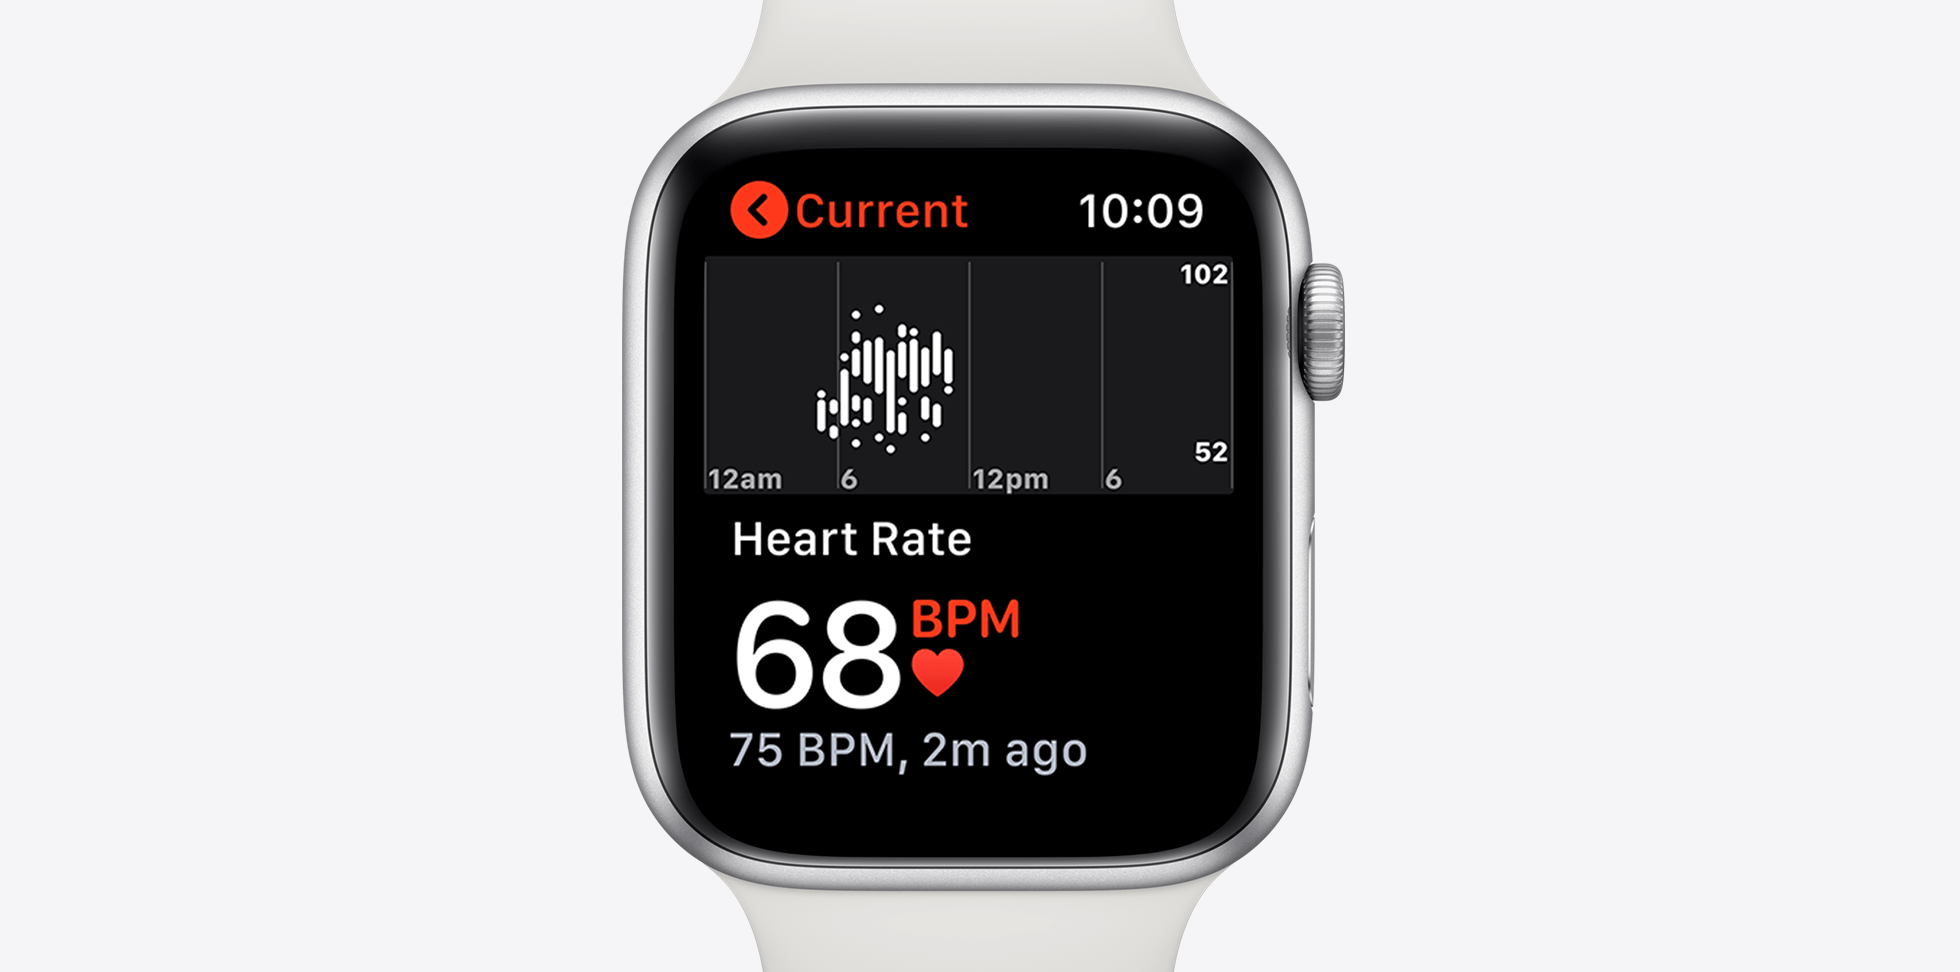 Apple Watch Series 5 With Heart Rate Monitor Apple Watch Heart Rate Monitor Apple Watch Series